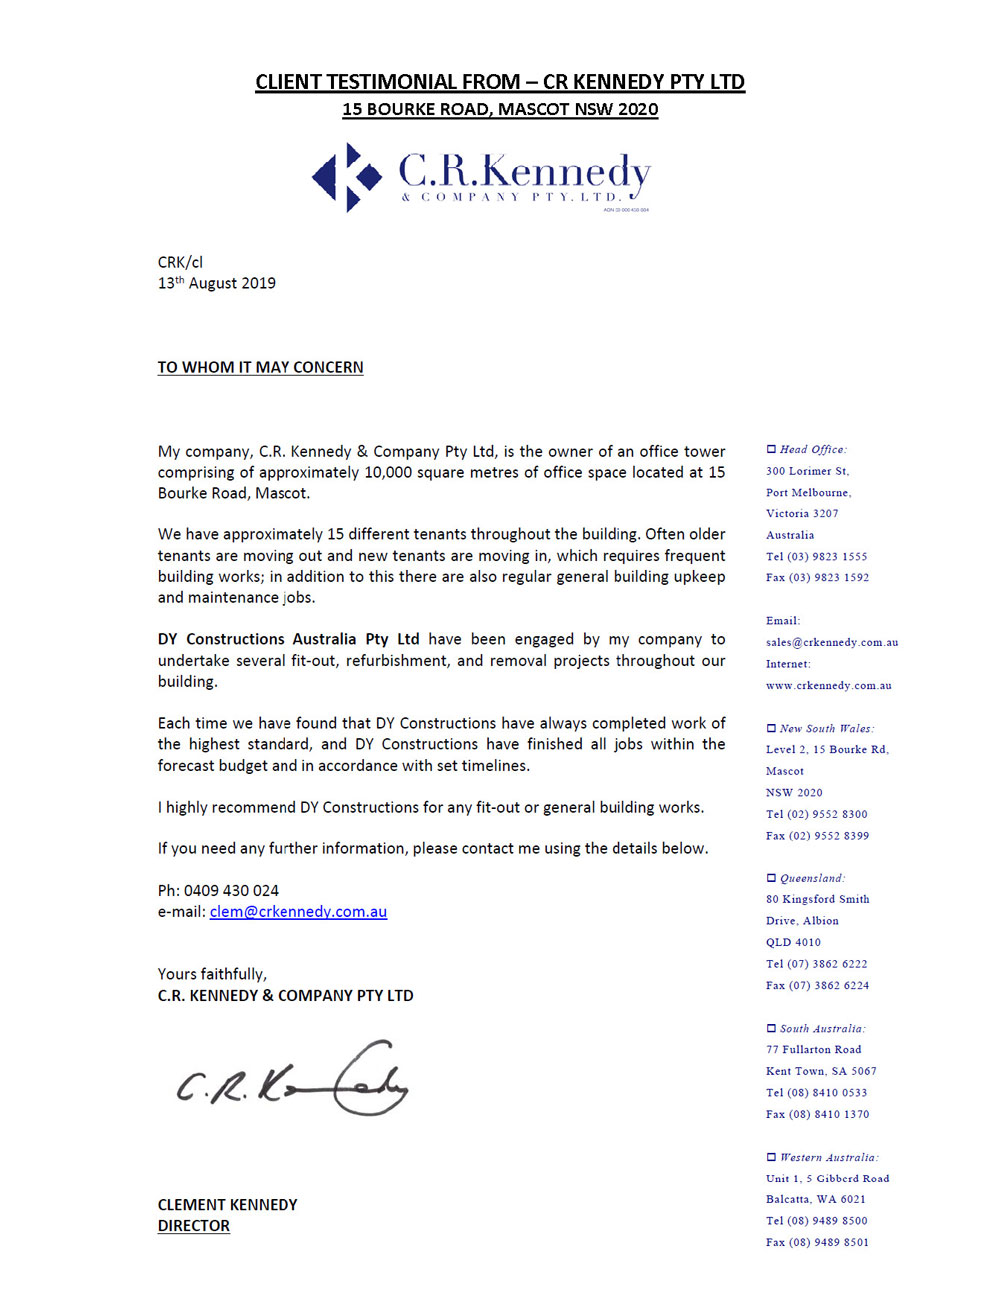 Client testimonial from CR Kennedy